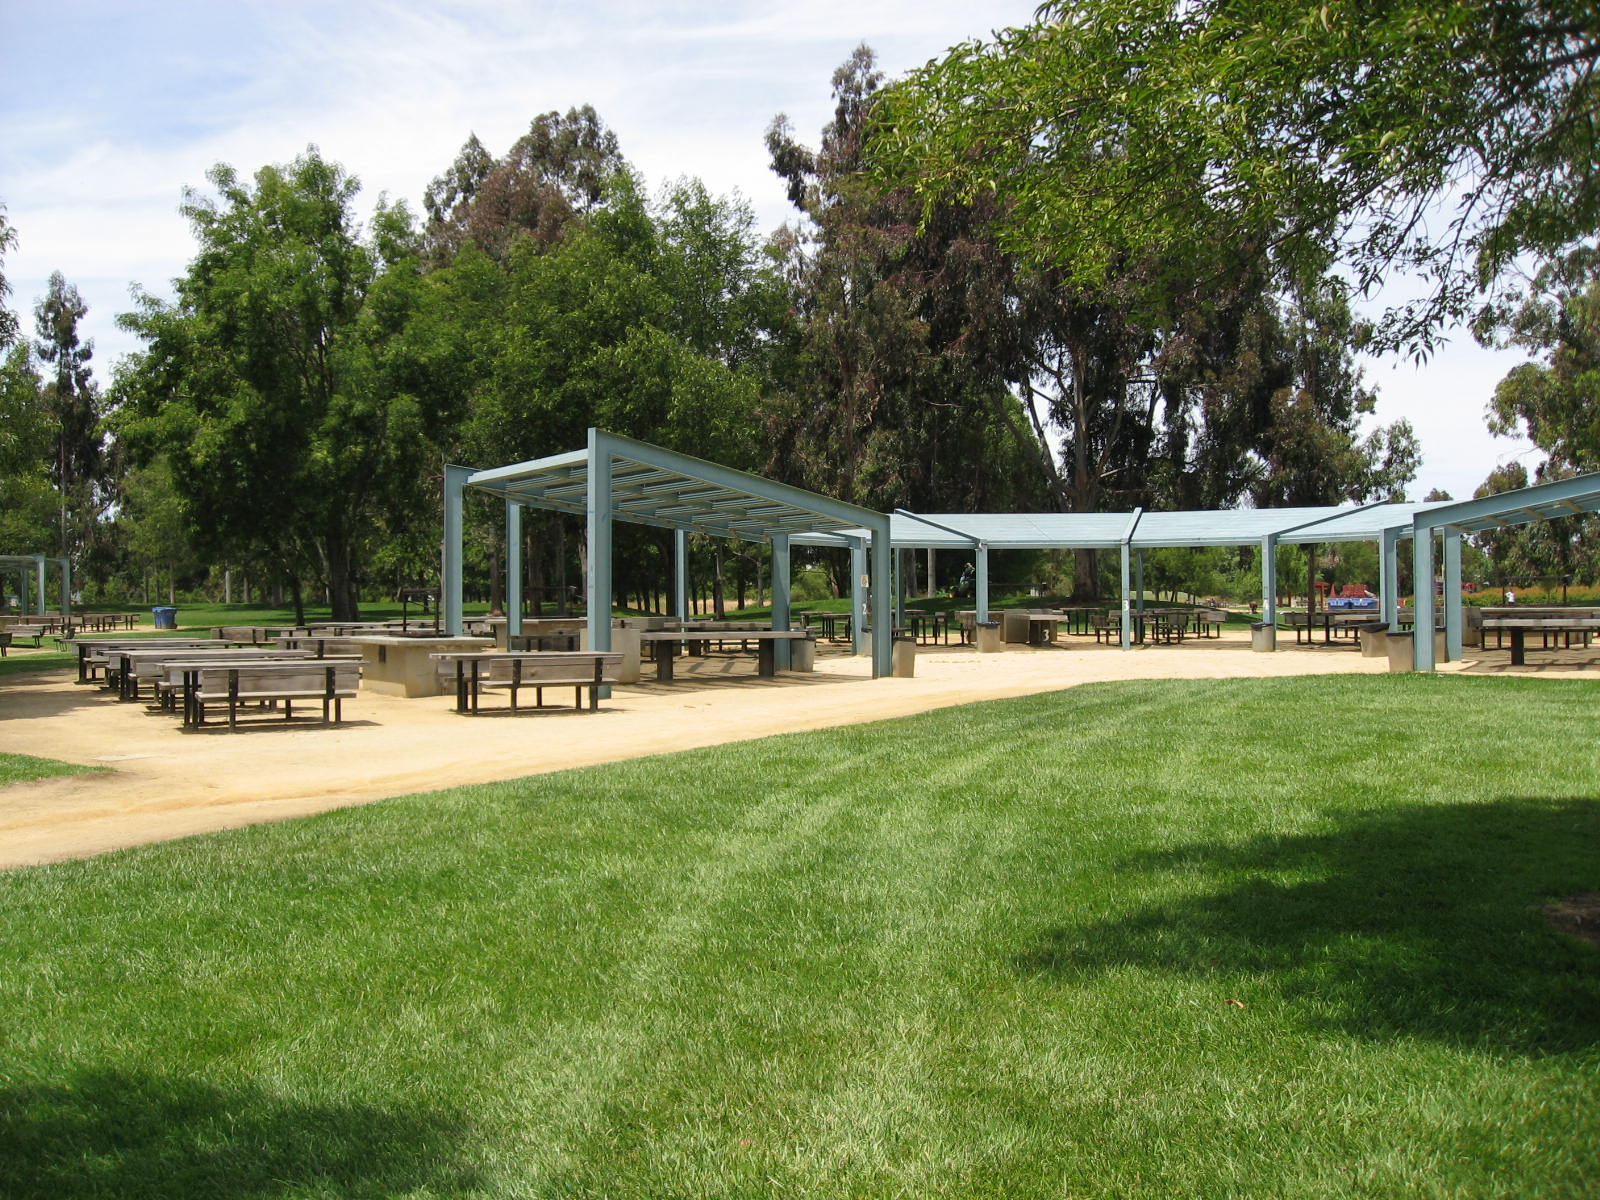 The season pass is valid only at Sunnyvale Baylands Park (Santa Clara County Park season passes are not valid). We encourage carpooling and ...